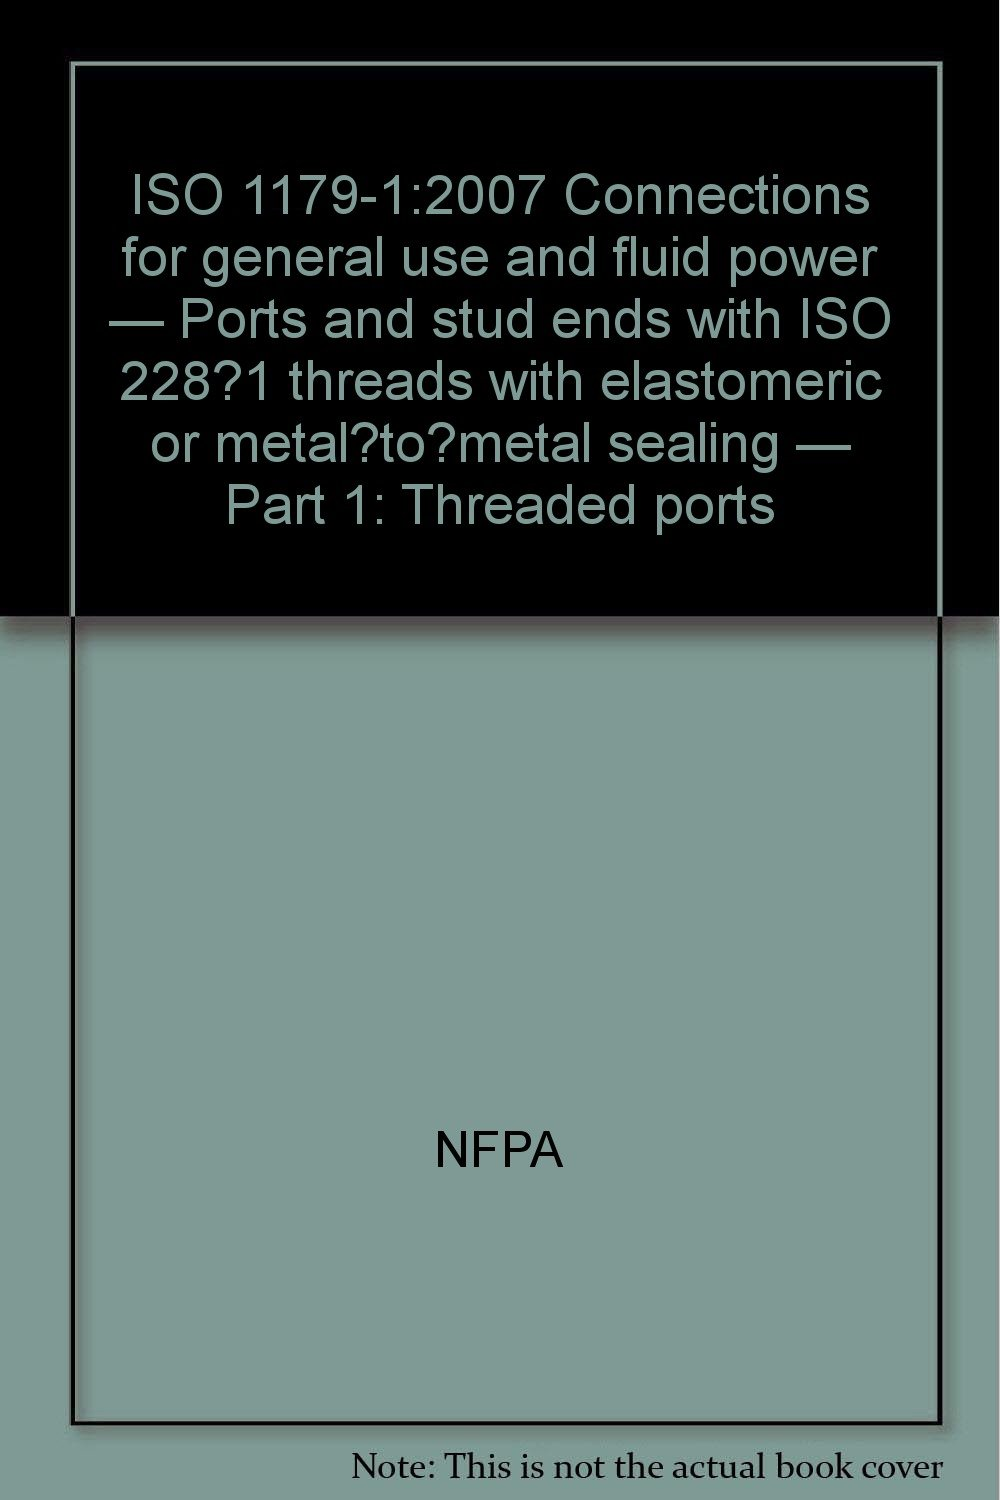 ISO 1179-1:2007 Connections for general use and fluid power — Ports and stud ends with ISO 228‑1 threads with elastomeric or metal‑to‑metal sealing — Part 1: Threaded ports ebook